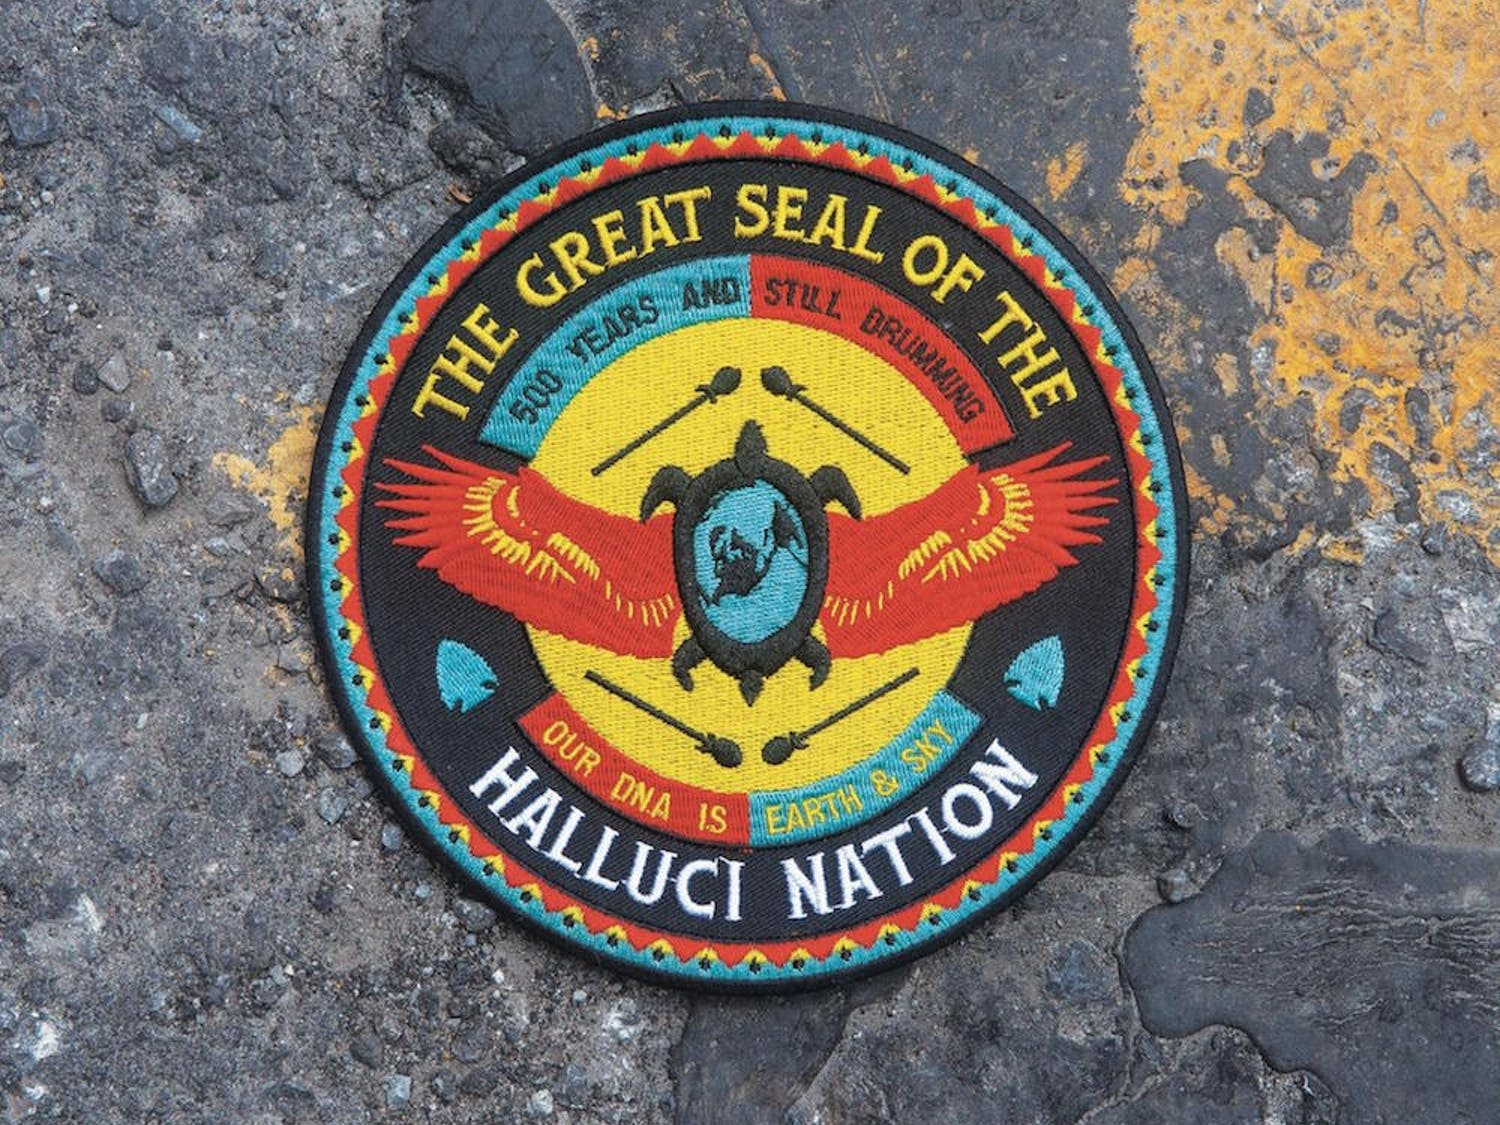 A Tribe Called Red's newest album We Are the Halluci Nation includes passages from Native American poet, John Trudell.